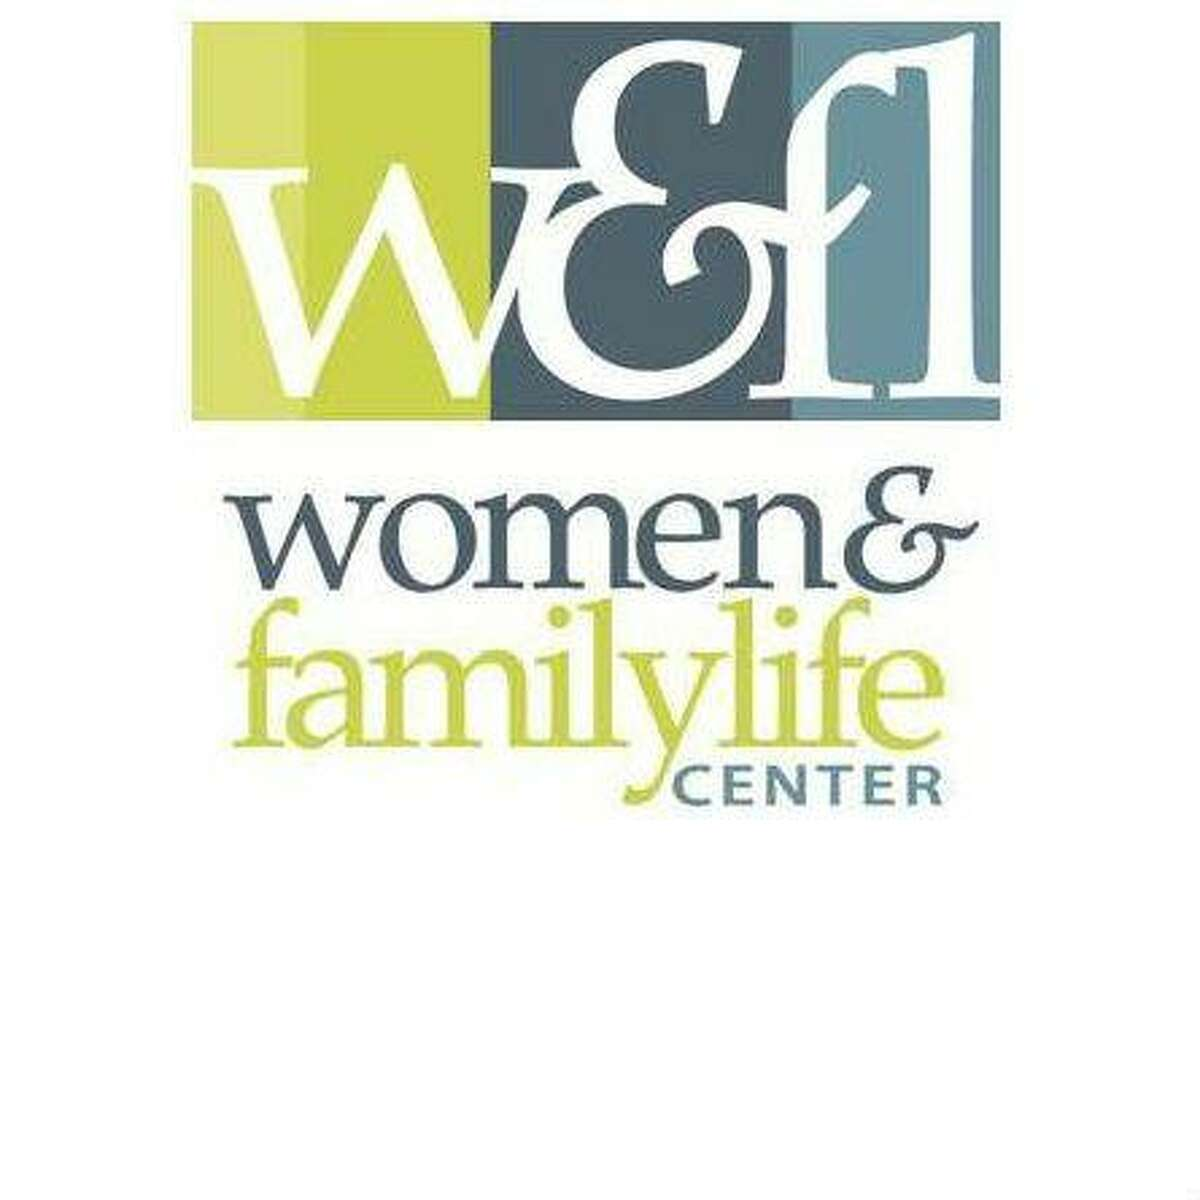 The Women & Family Life Center in Guilford